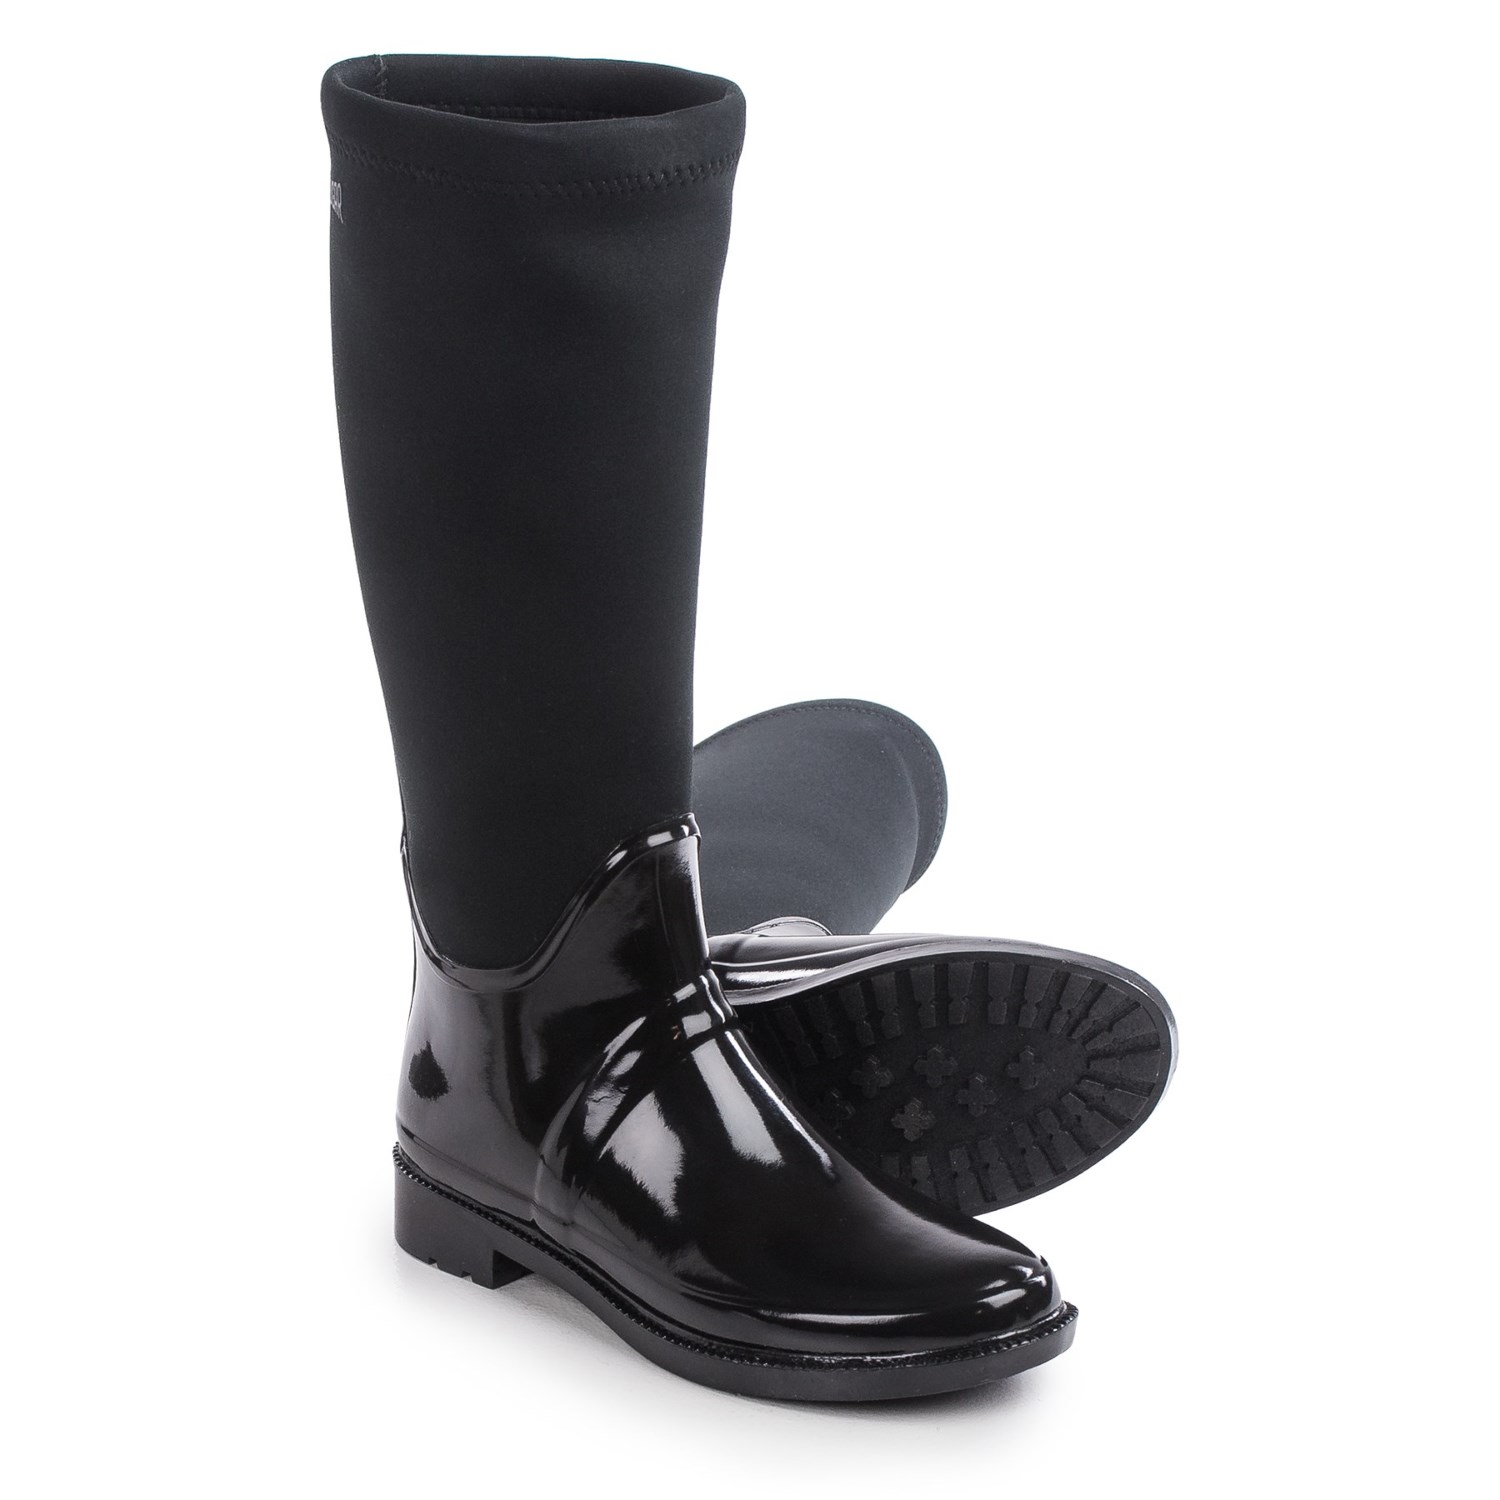 Waterproof Rain Boots - Cr Boot